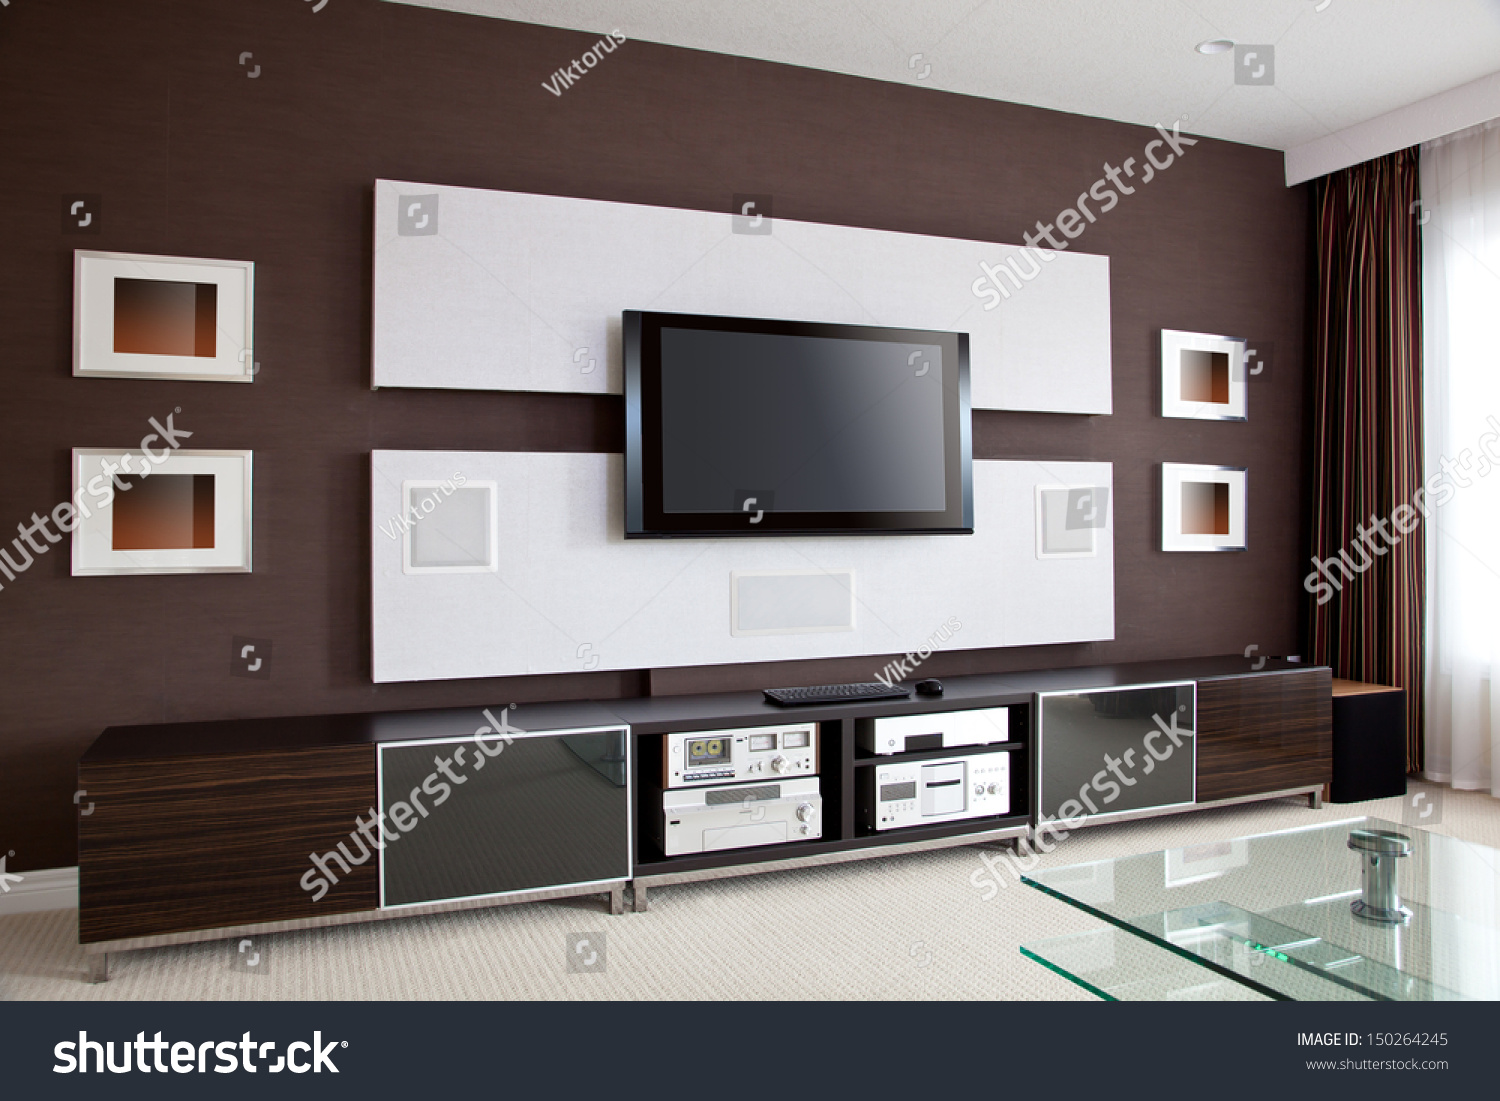 modern home theater room interior flat stock photo 150264245